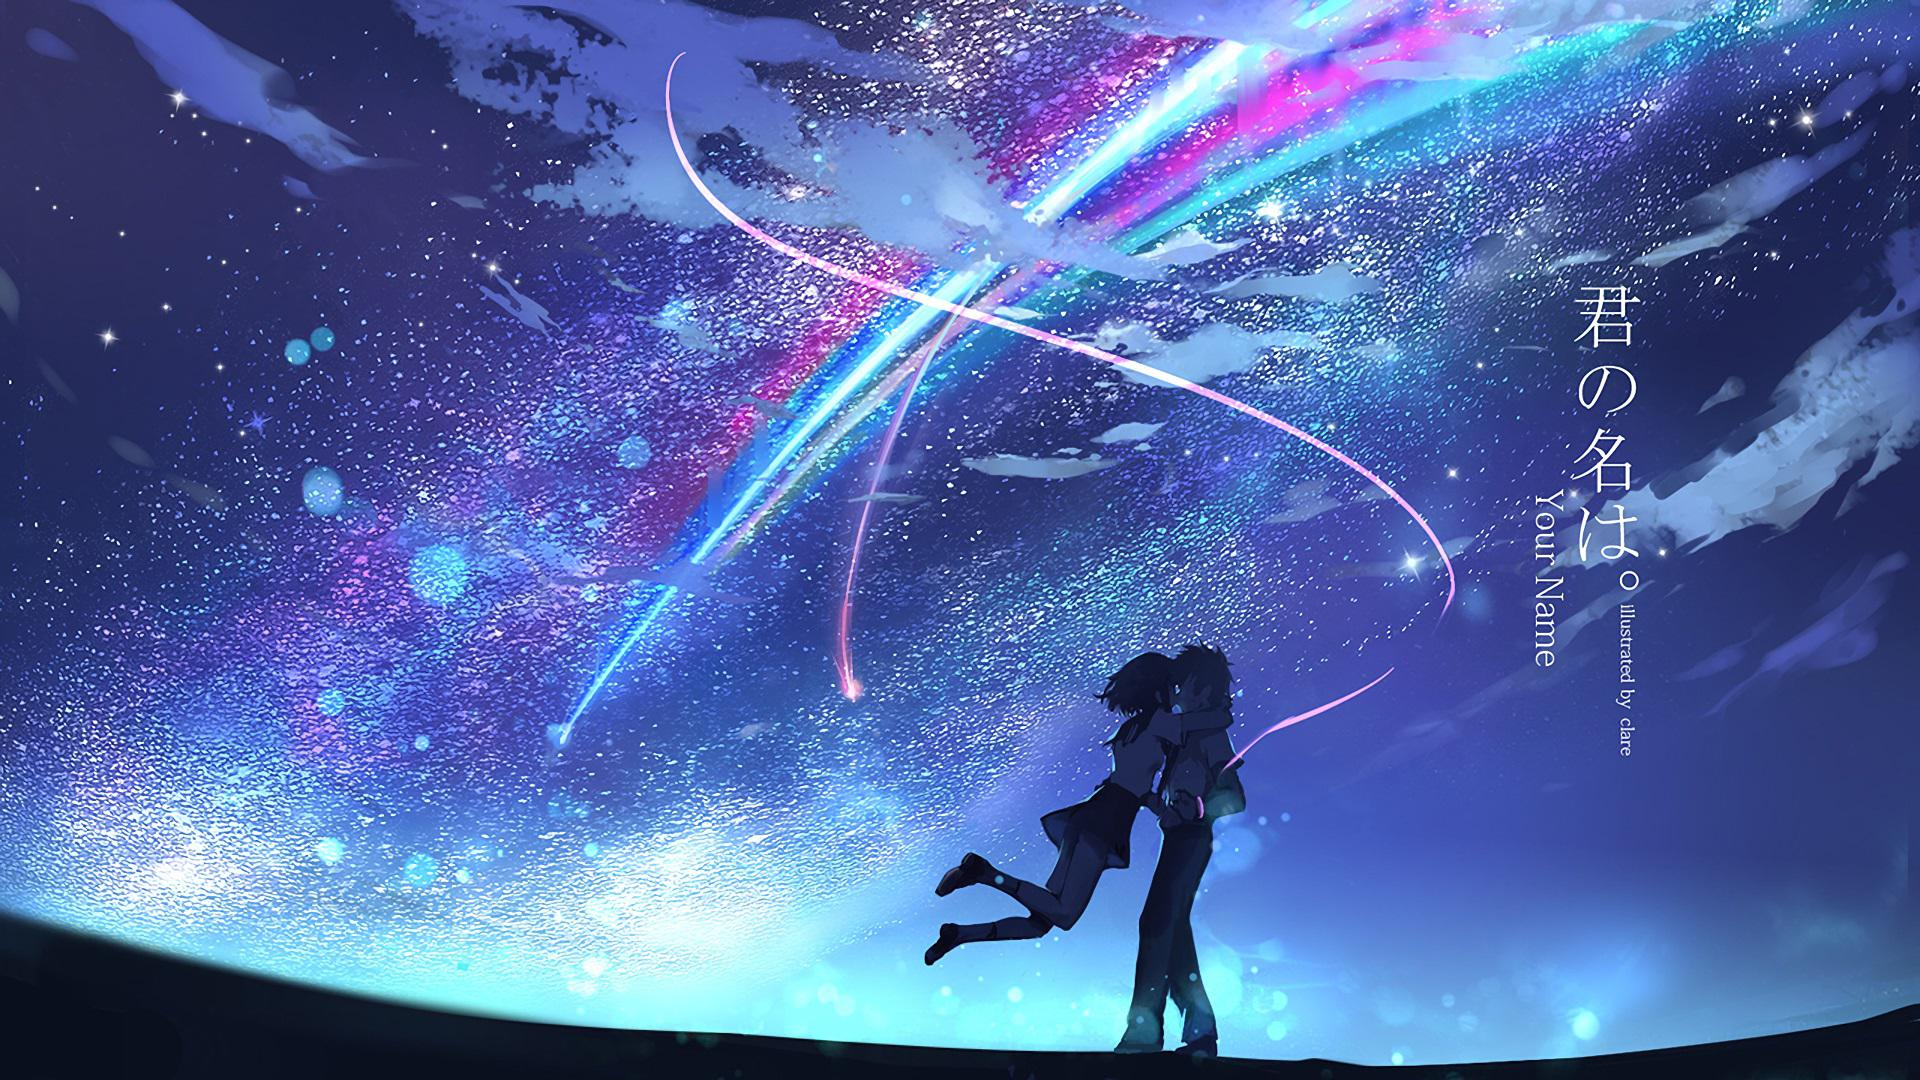 Film Cartoon - Your Name - Kimi no Na wa (love anime story) - Taki e Mitsuha - comet Tianmat